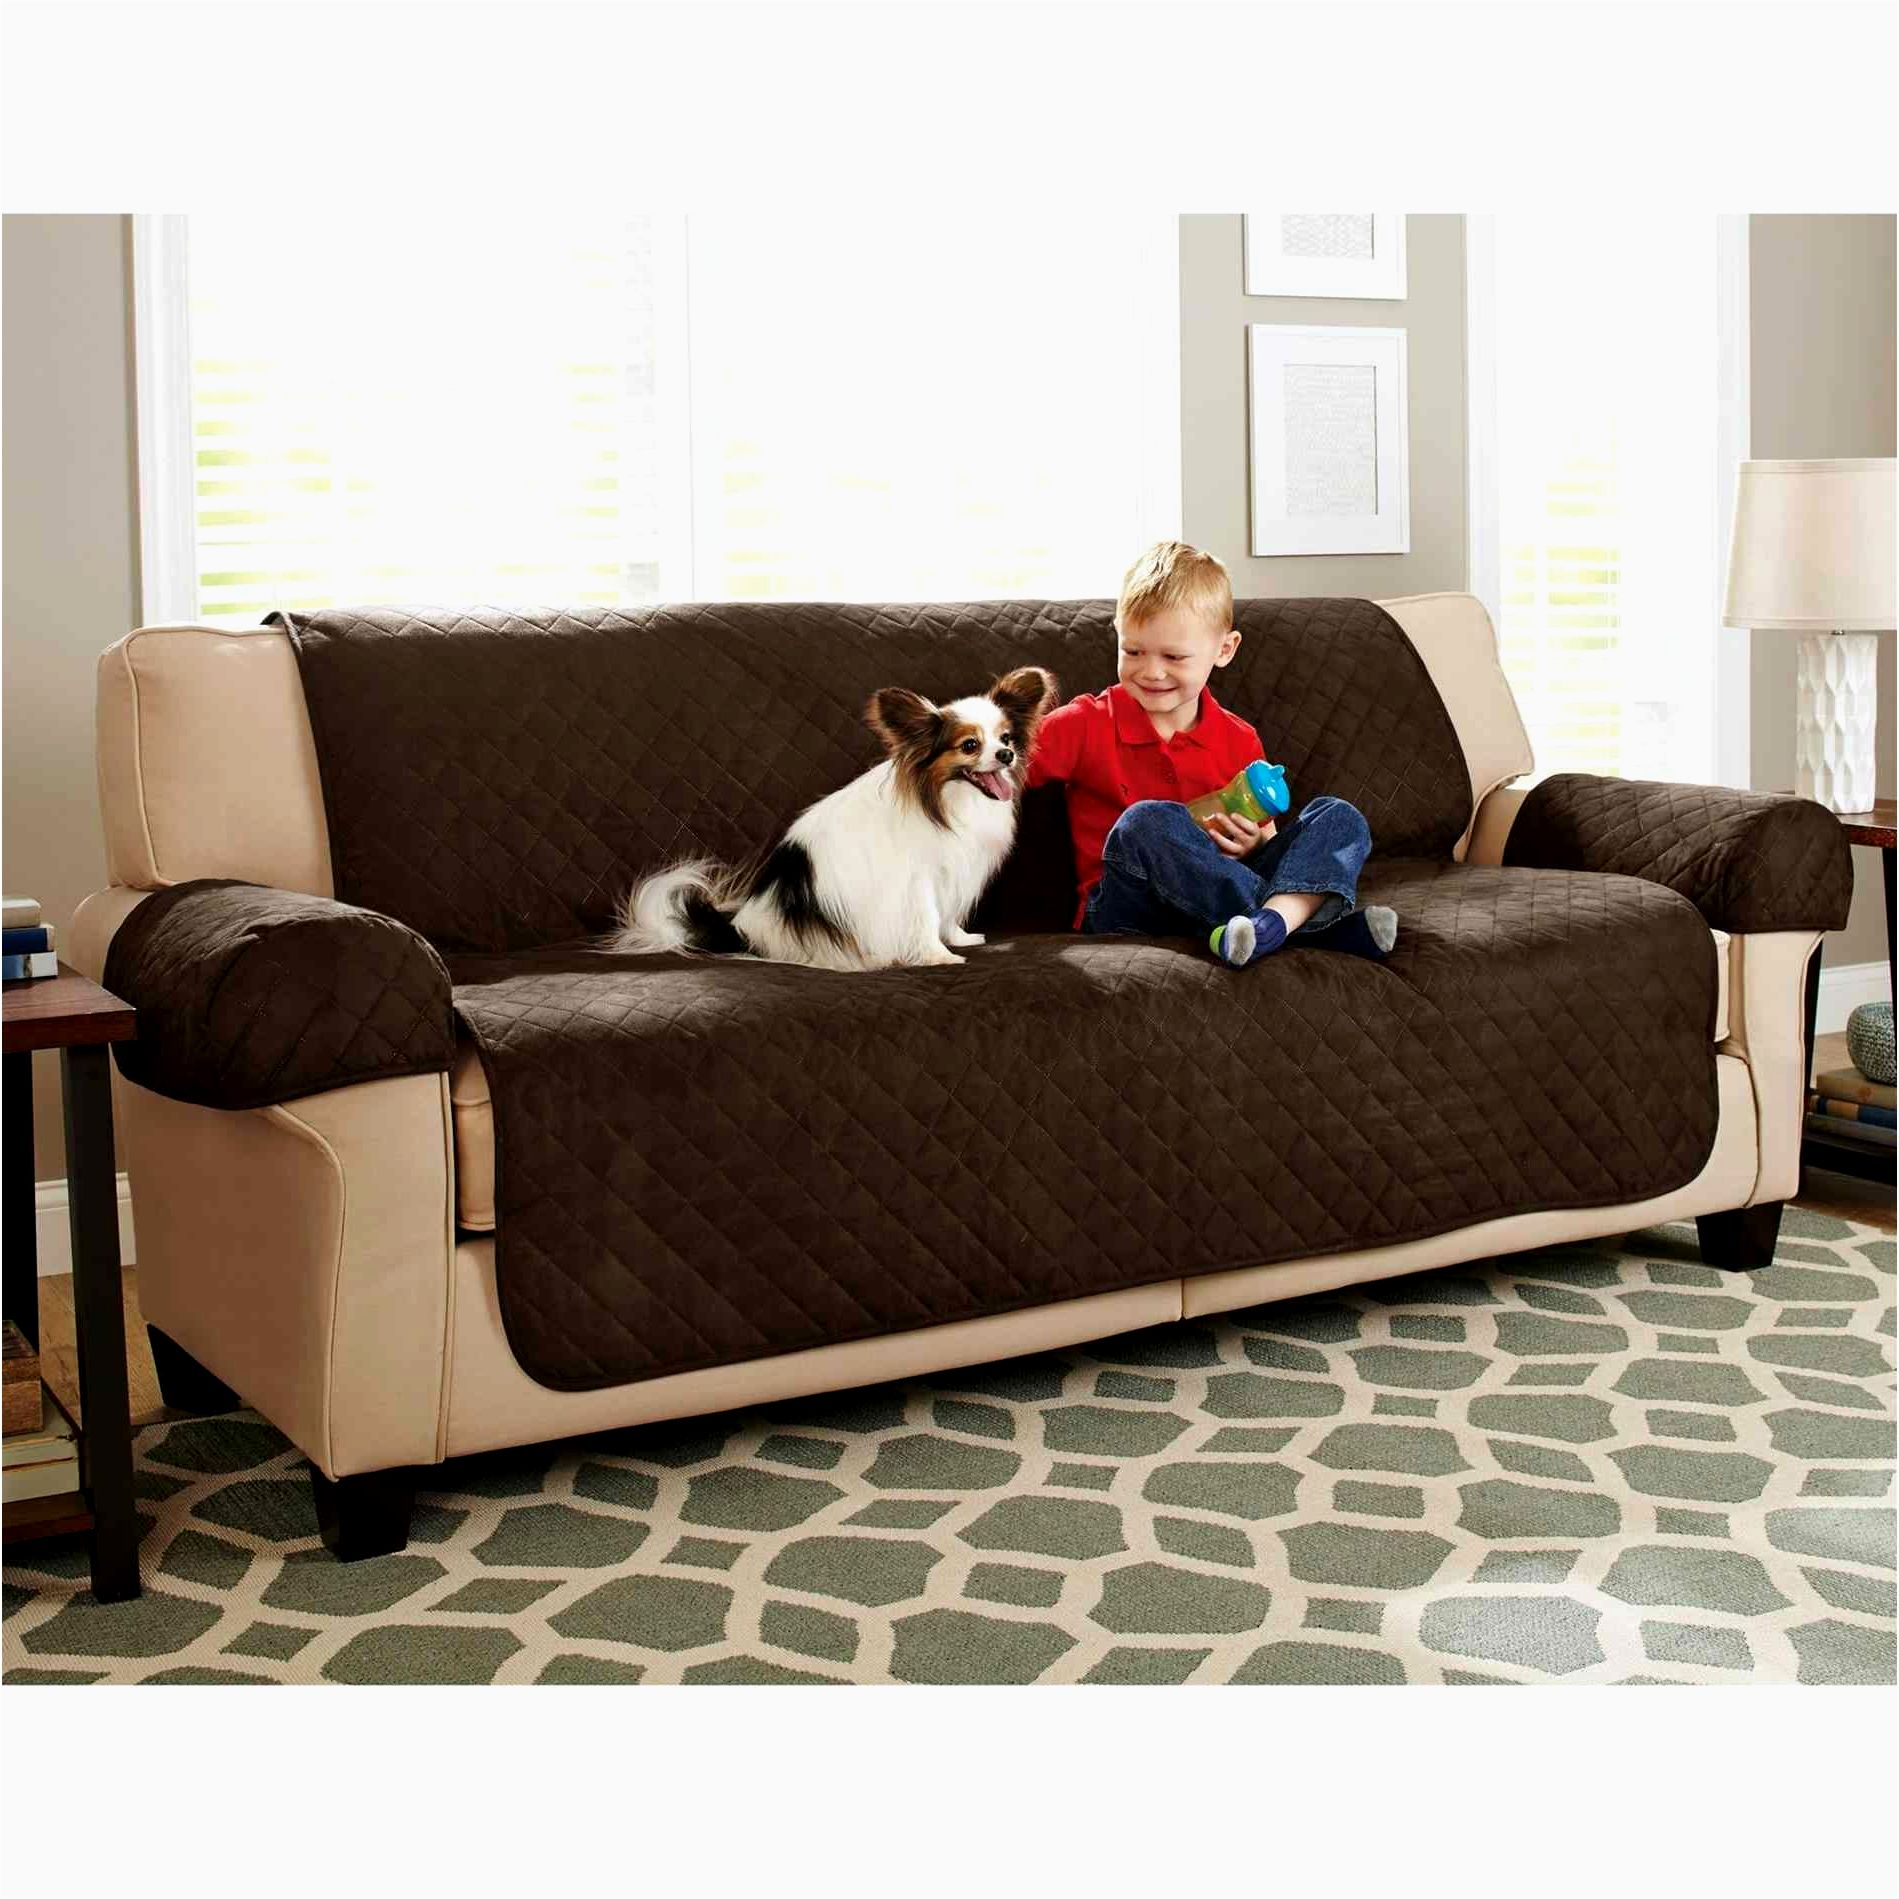 inspirational dog sofa bed design-Cool Dog sofa Bed Architecture